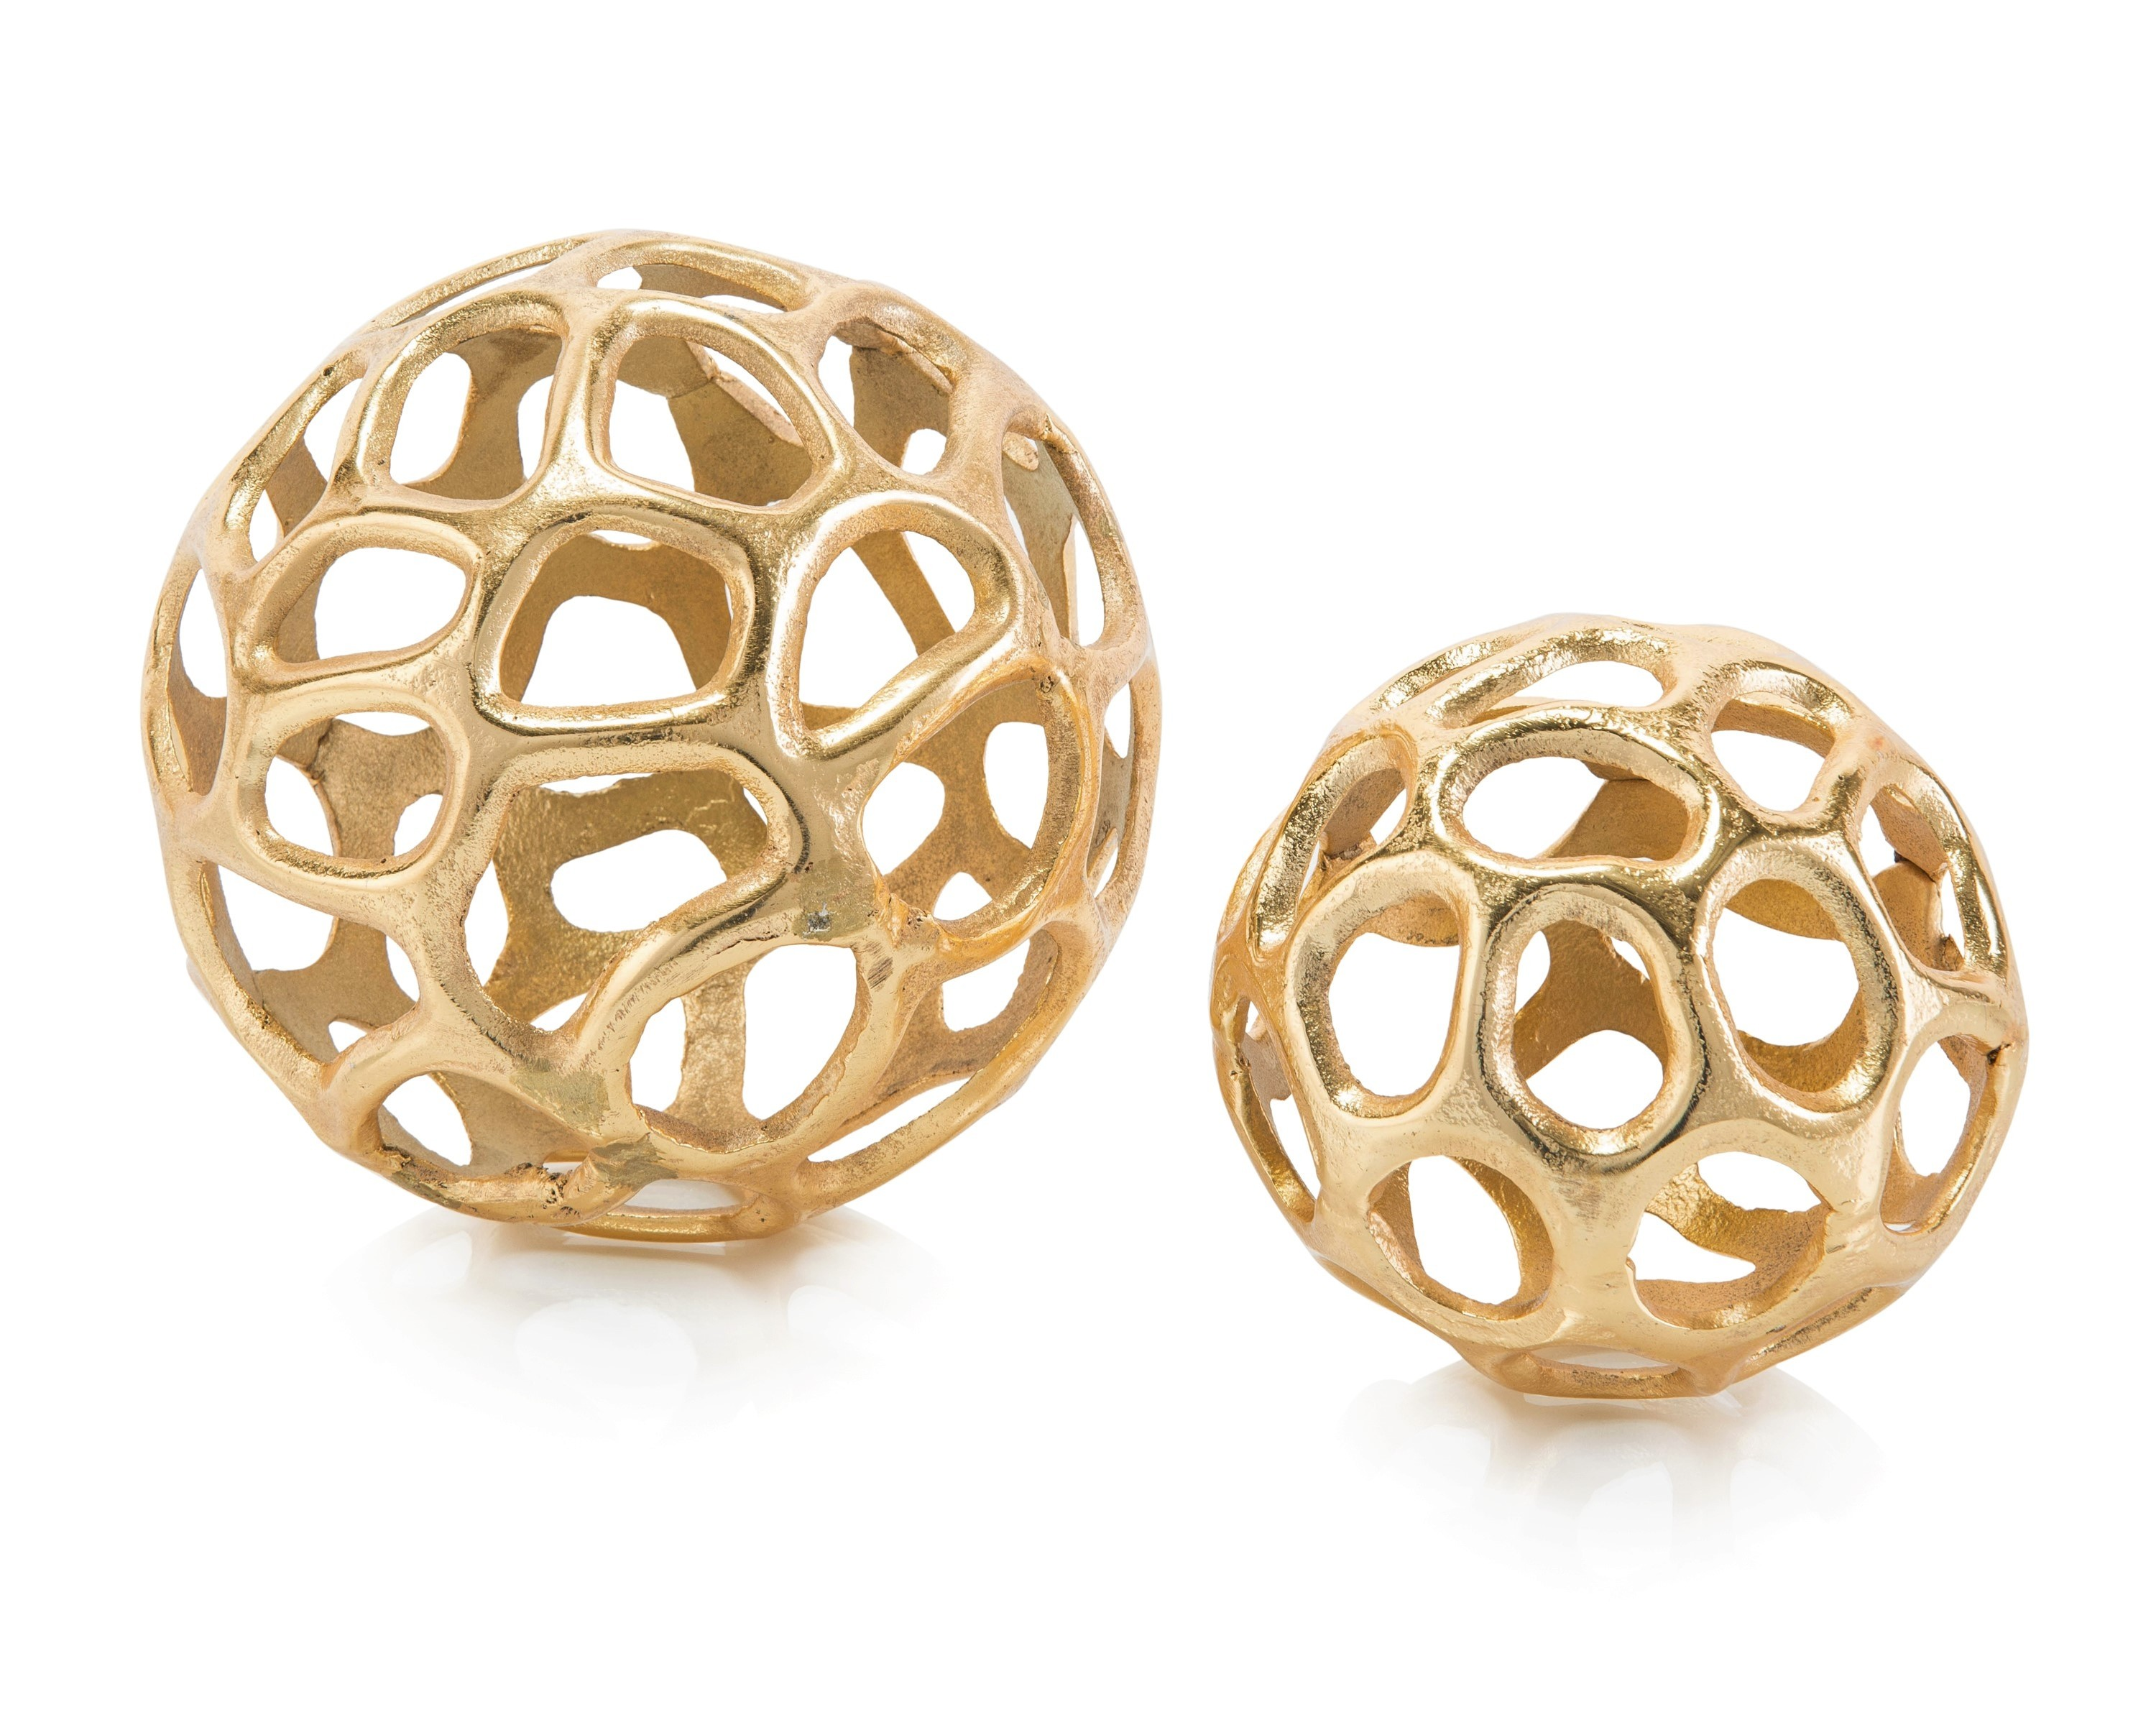 gold-balls-with-holes-s2